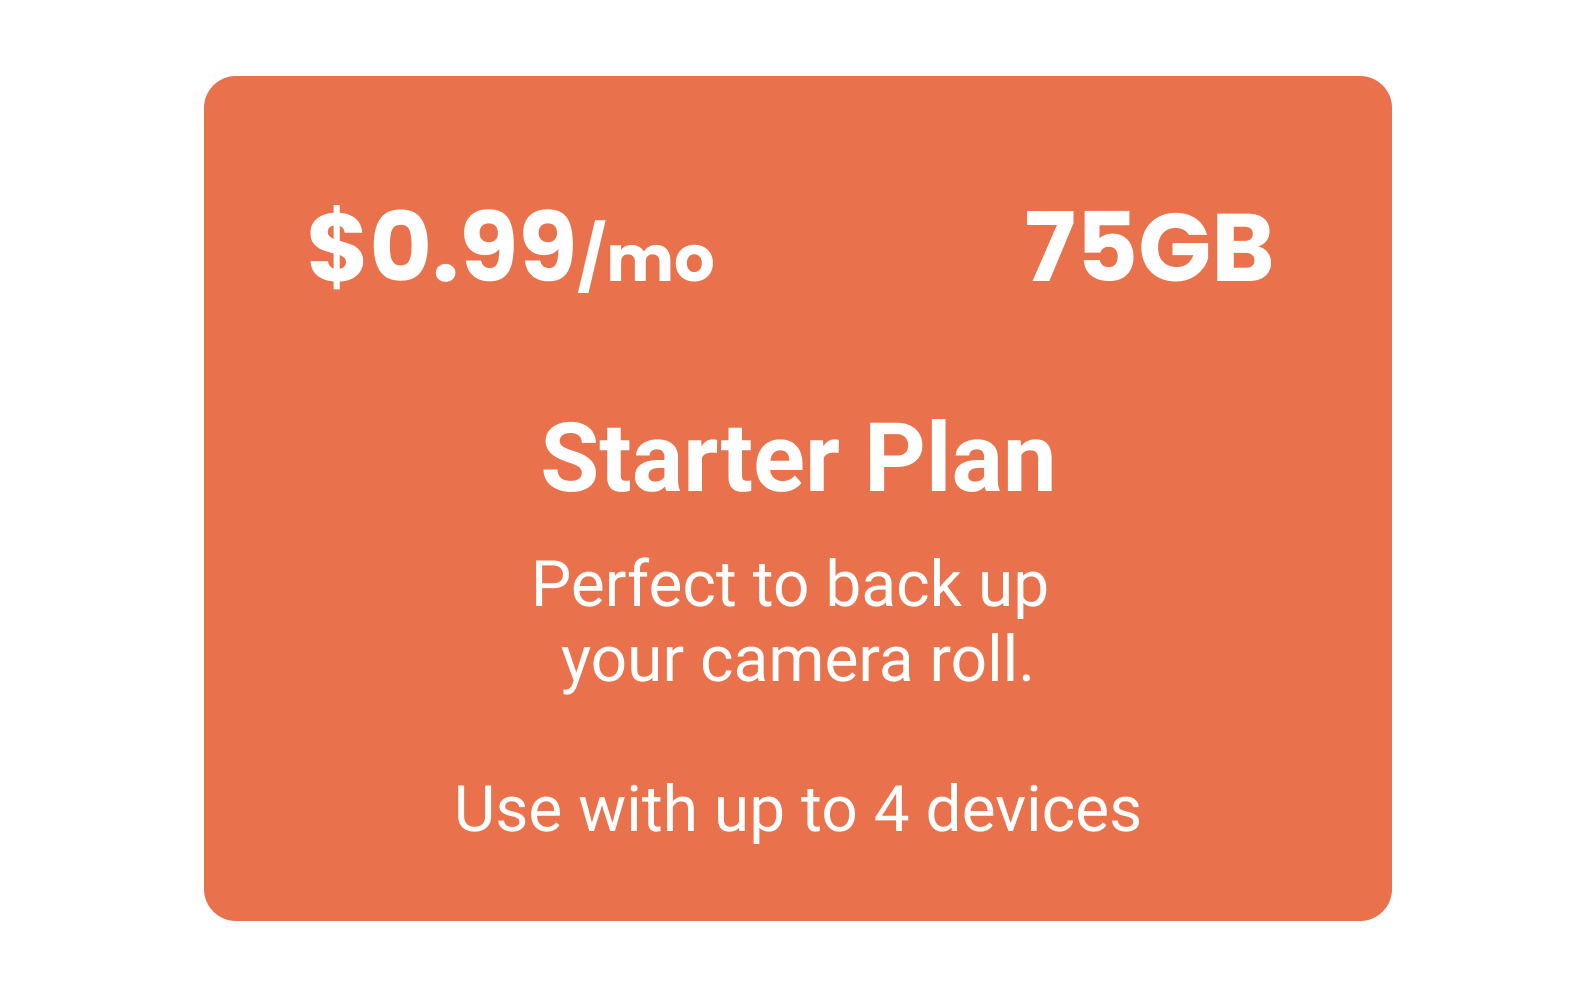 Slik Photos - You can quickly start uploading your photos with payment plans starting at only $0.99/month